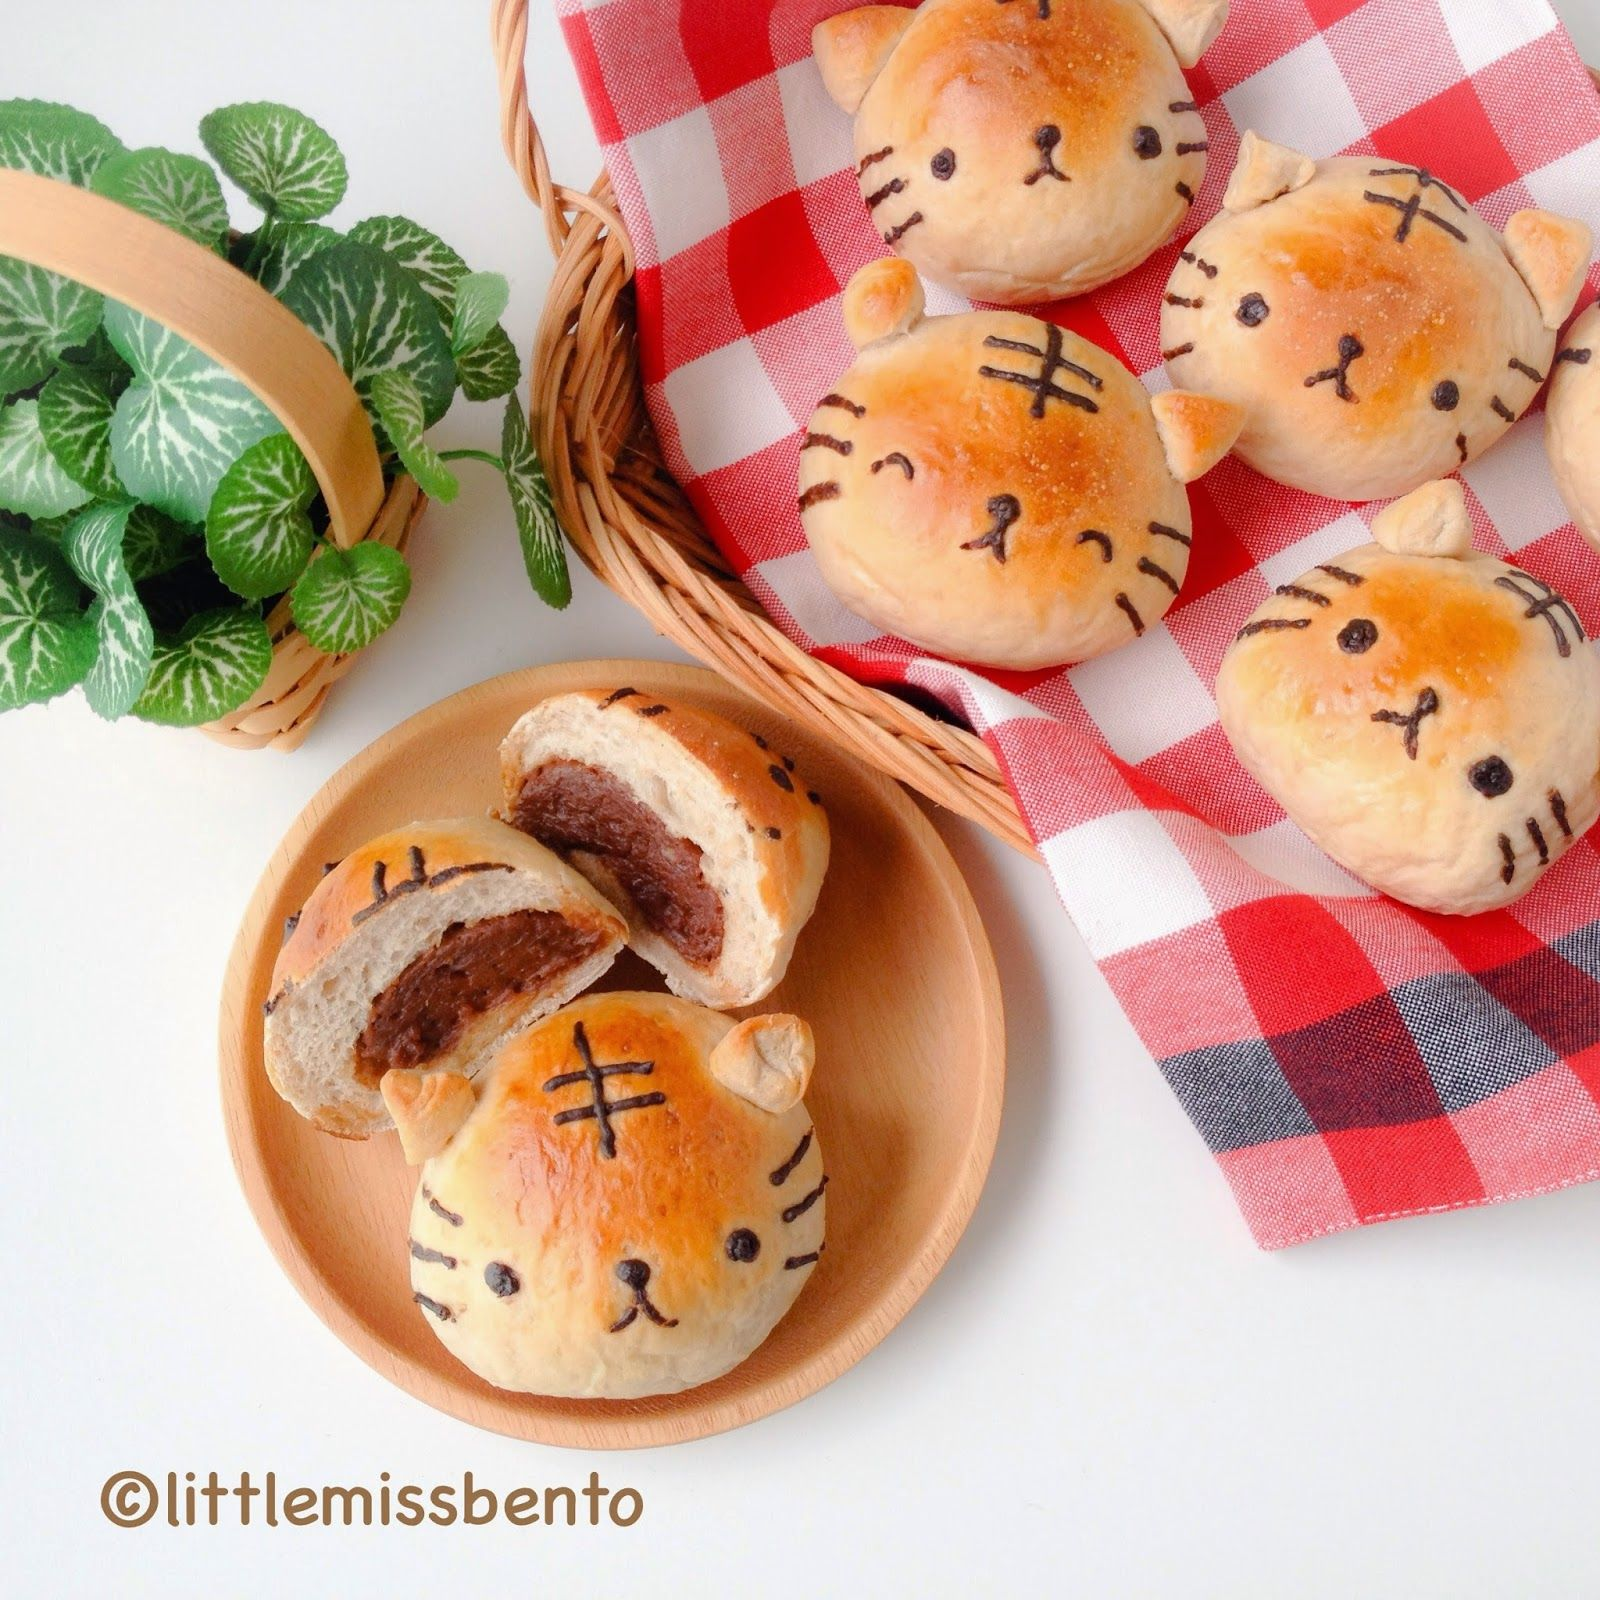 little miss bento recipe homemade milo bread buns cute tiger buns kawaii. Black Bedroom Furniture Sets. Home Design Ideas